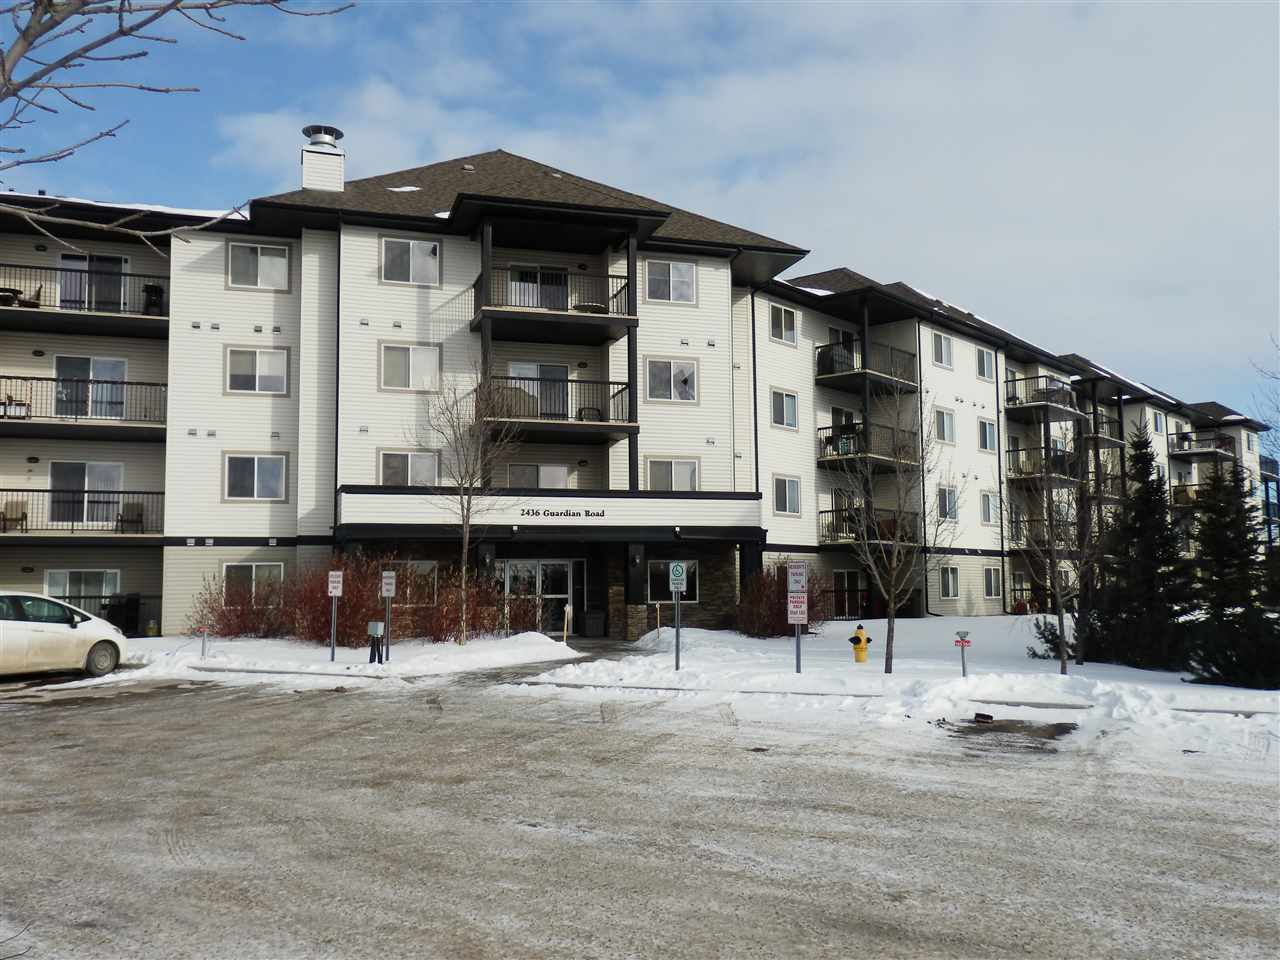 Main Photo: 134 2436 GUARDIAN Road NW in Edmonton: Zone 58 Condo for sale : MLS® # E4097484